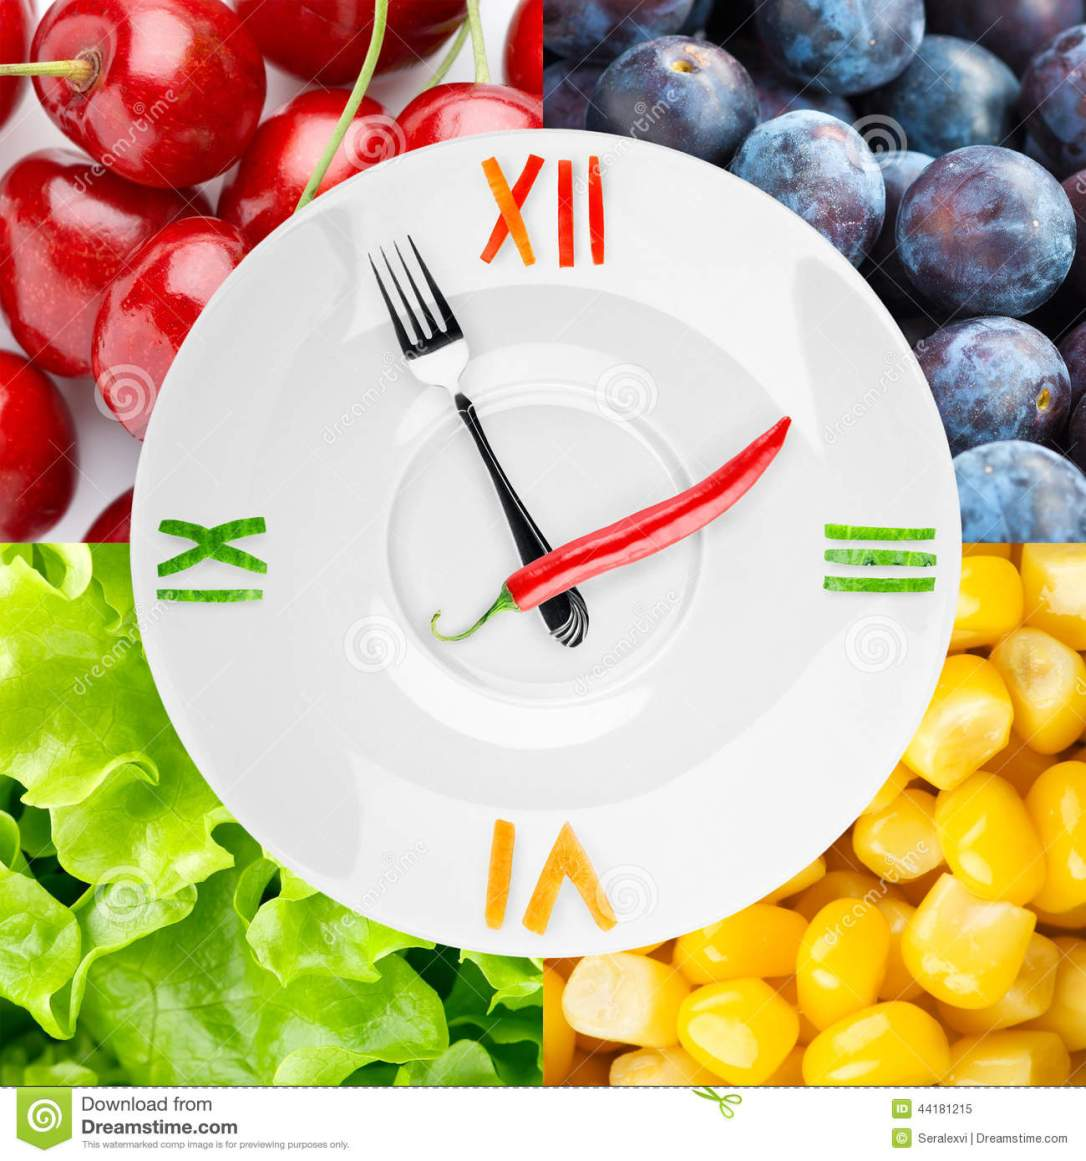 healthy-food-concept-clock-vegetables-fruits-as-background-44181215